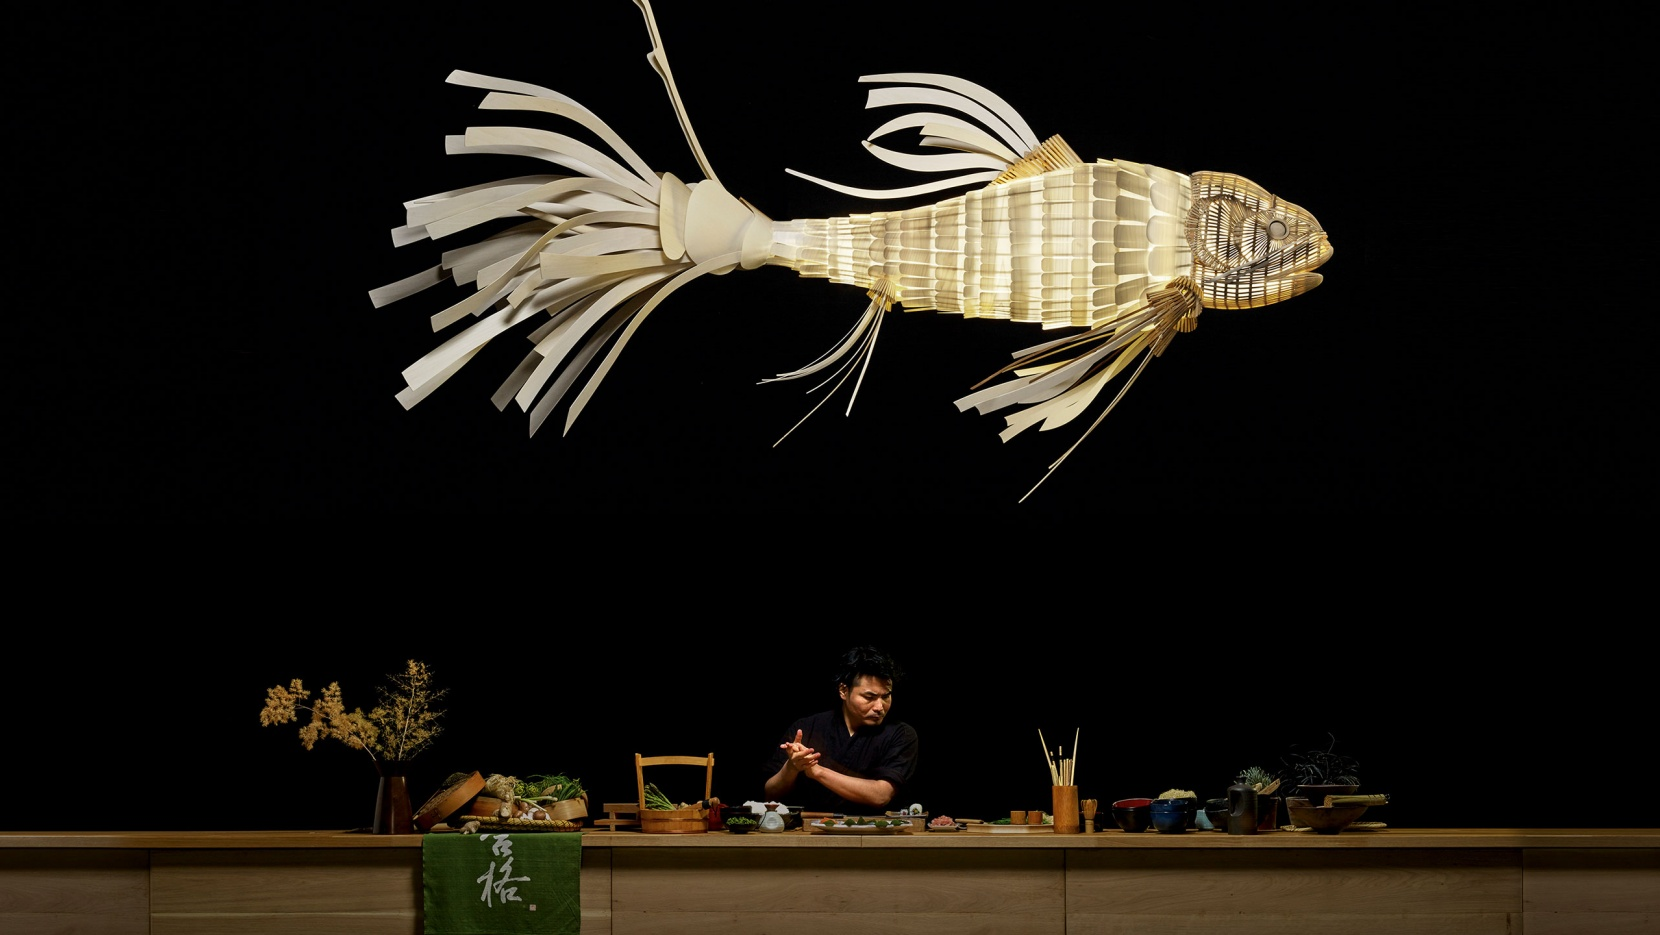 Koi Fish In The World By Lzf Lamps